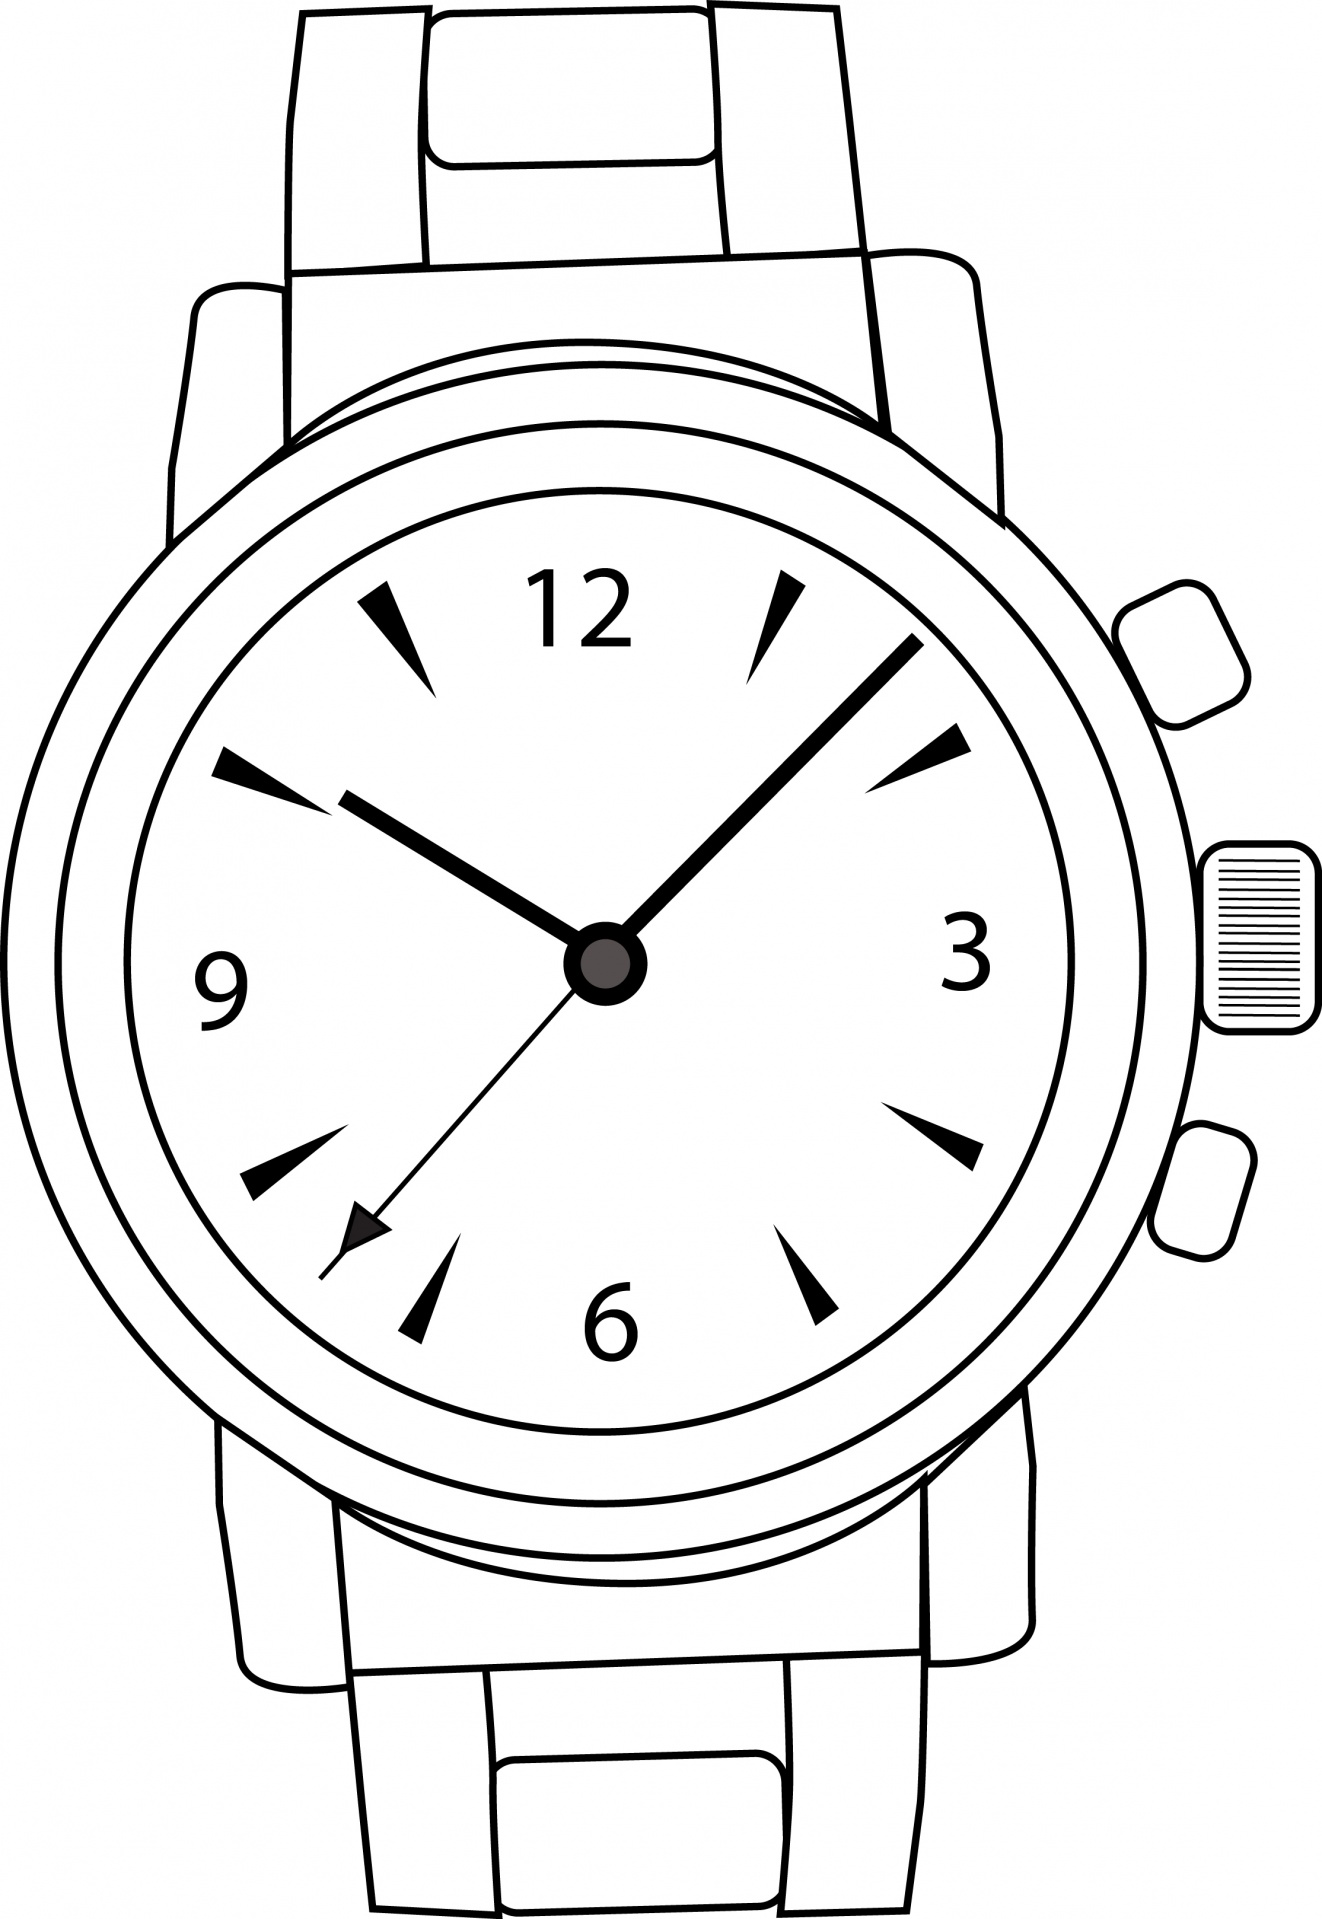 Wrist watch vector clipart png freeuse library Watch,wrist watch,time,clipart,watch-vector - free photo ... png freeuse library